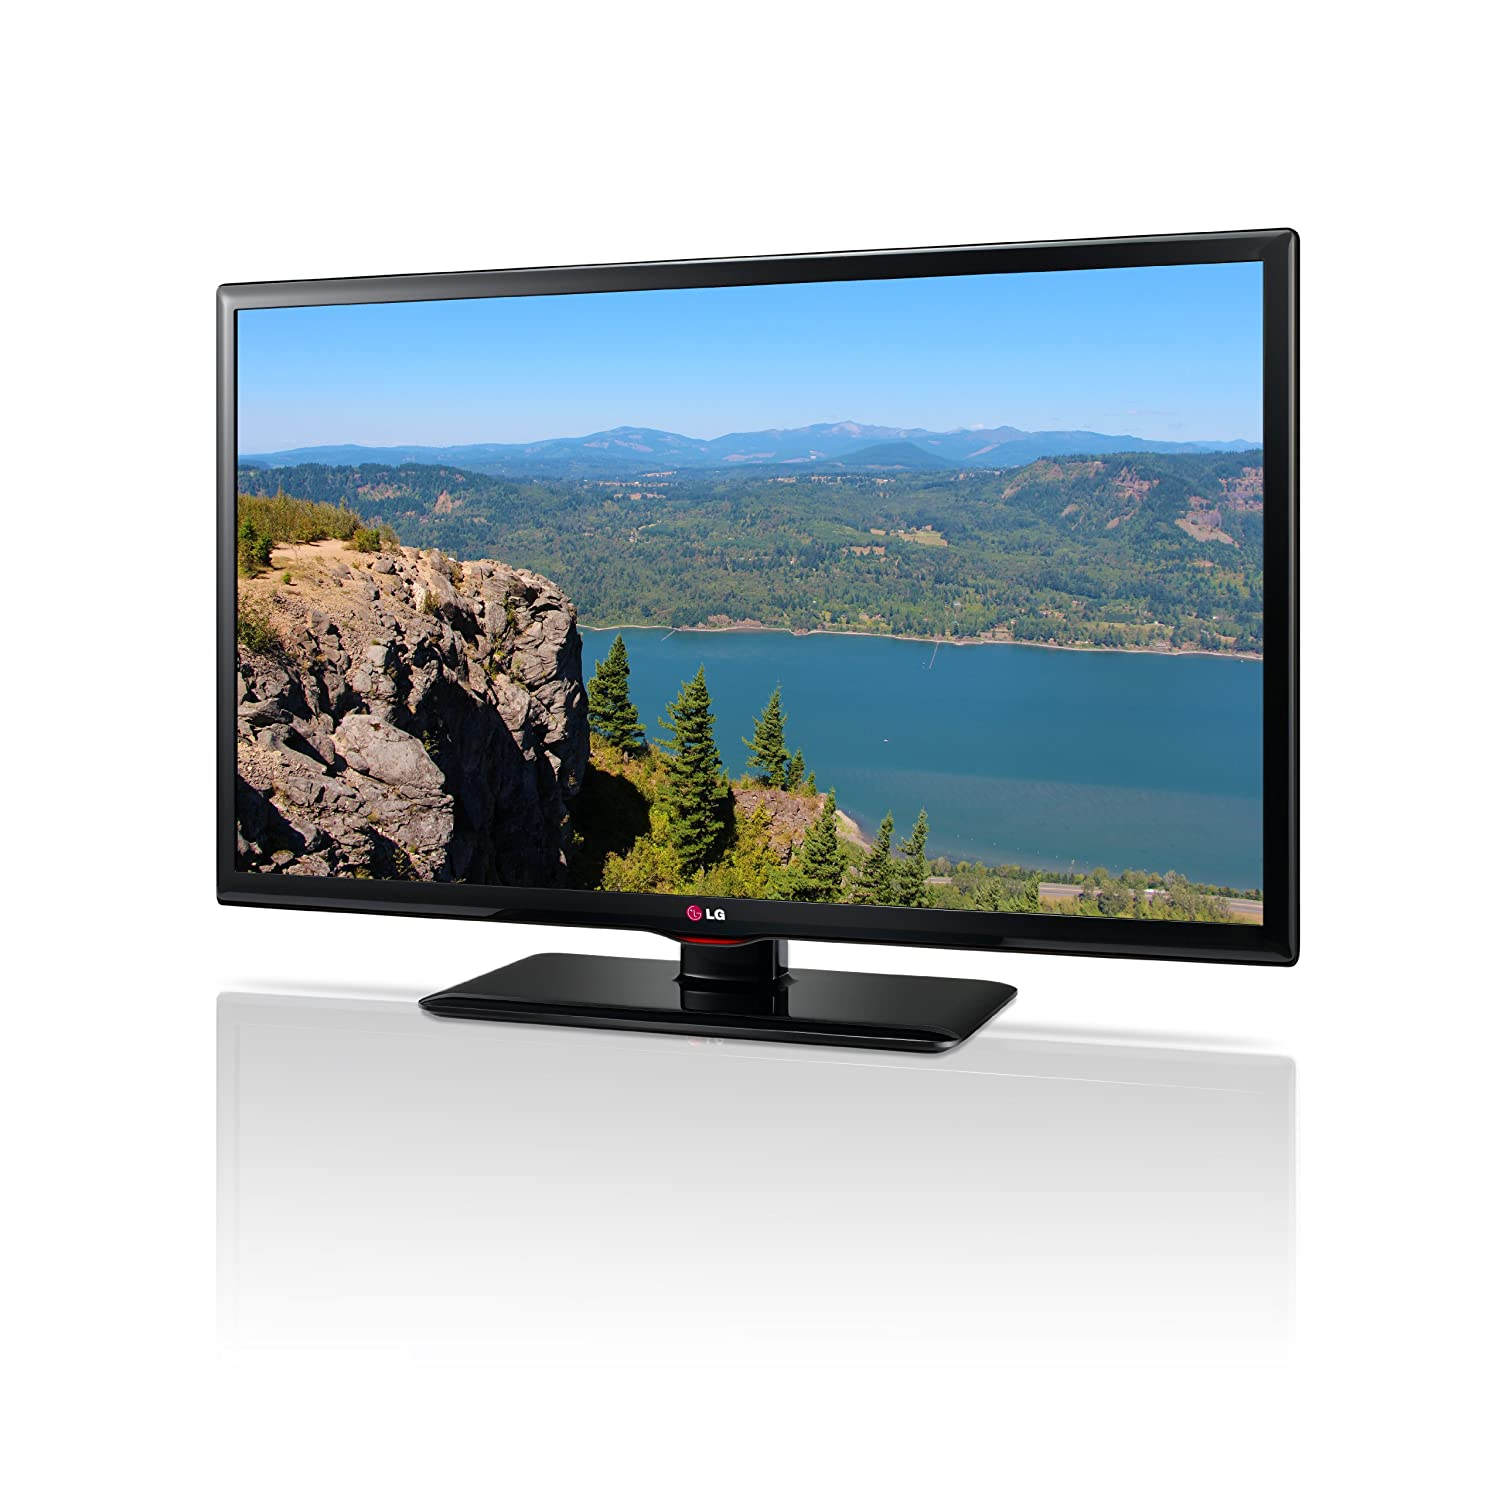 LG-Electronics-32LN520B-32-Inch-720p-60Hz-LED-TV-Discontinued-by-Manufacturer-